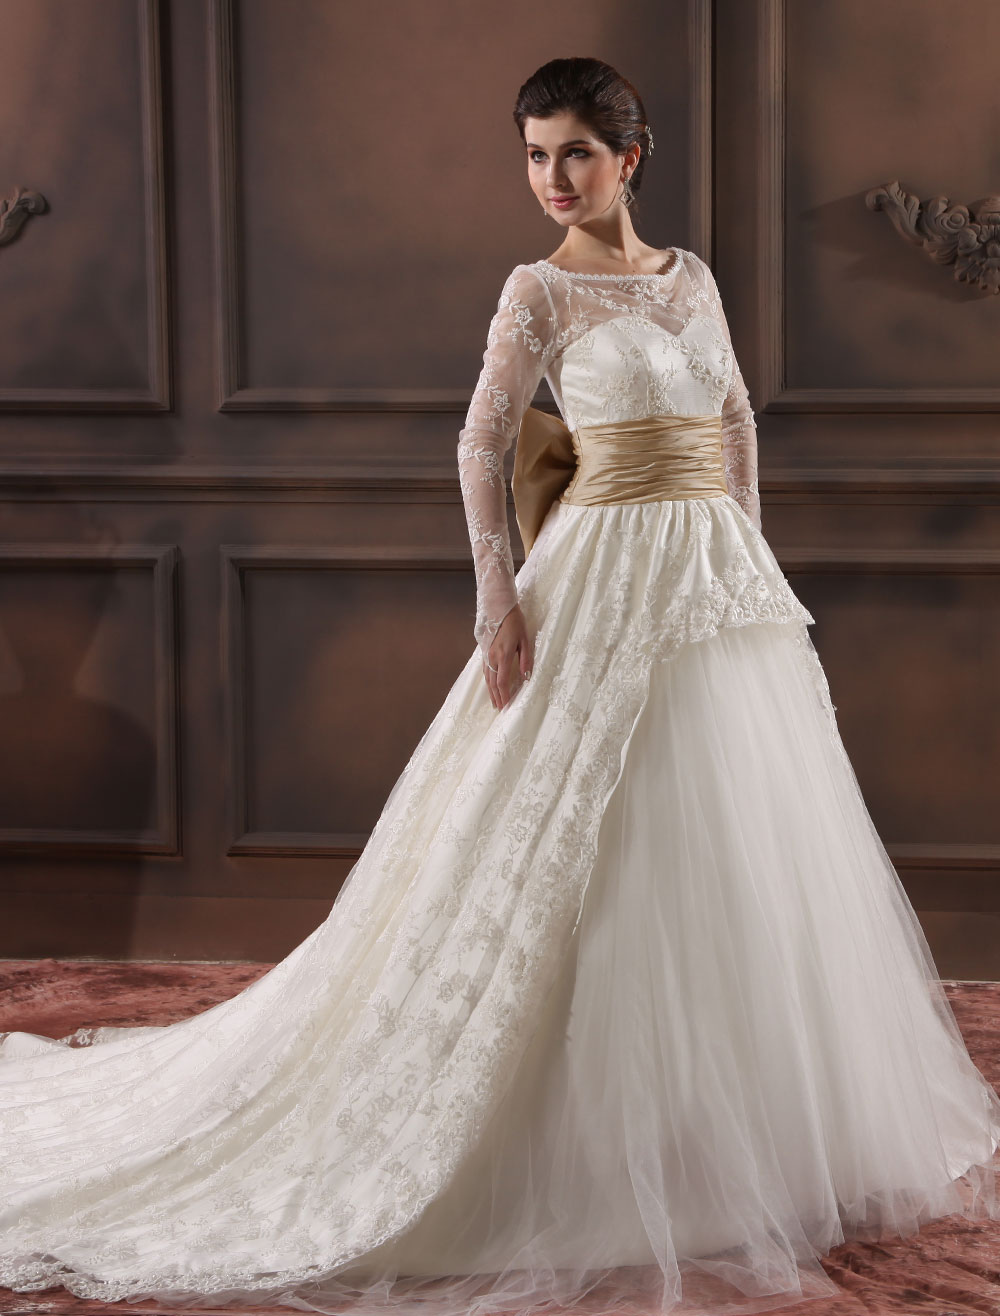 Glamorous Ivory Sash Jewel Neck Long Sleeves A-line Lace Wedding Dress Milanoo